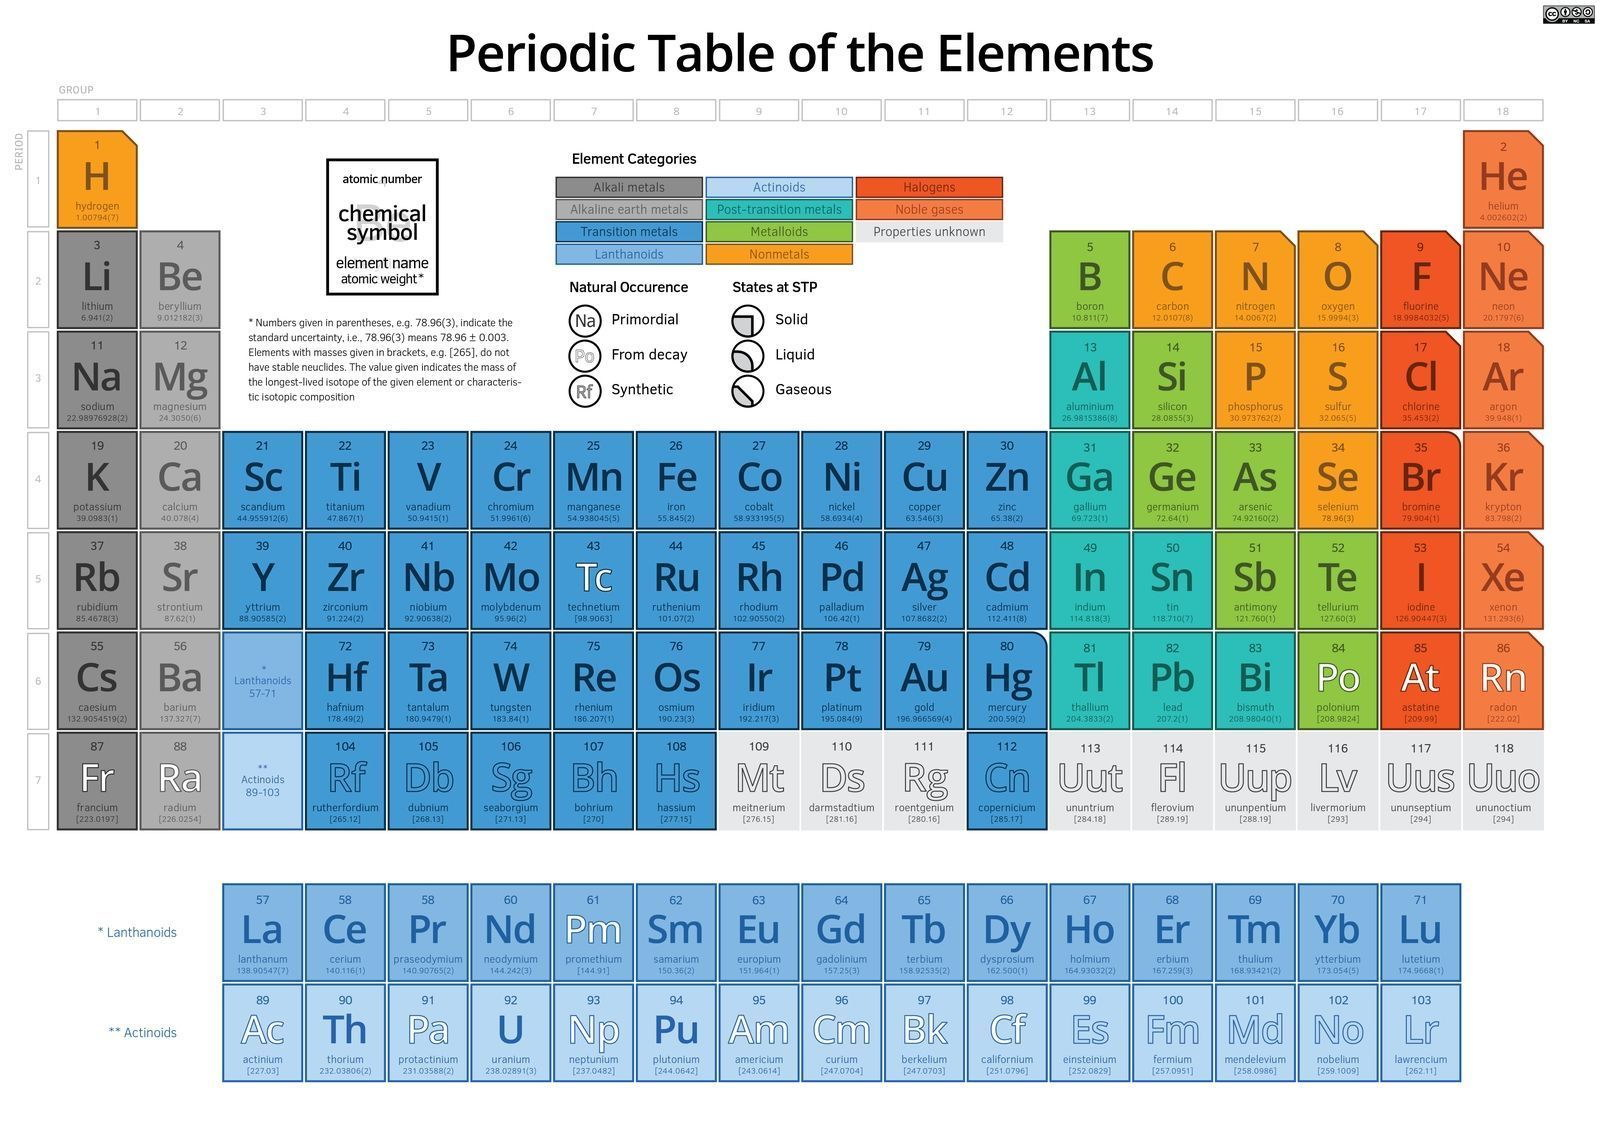 62729 periodic table of the elements ptte03 giant wall print poster 62729 periodic table of the elements ptte03 giant urtaz Gallery